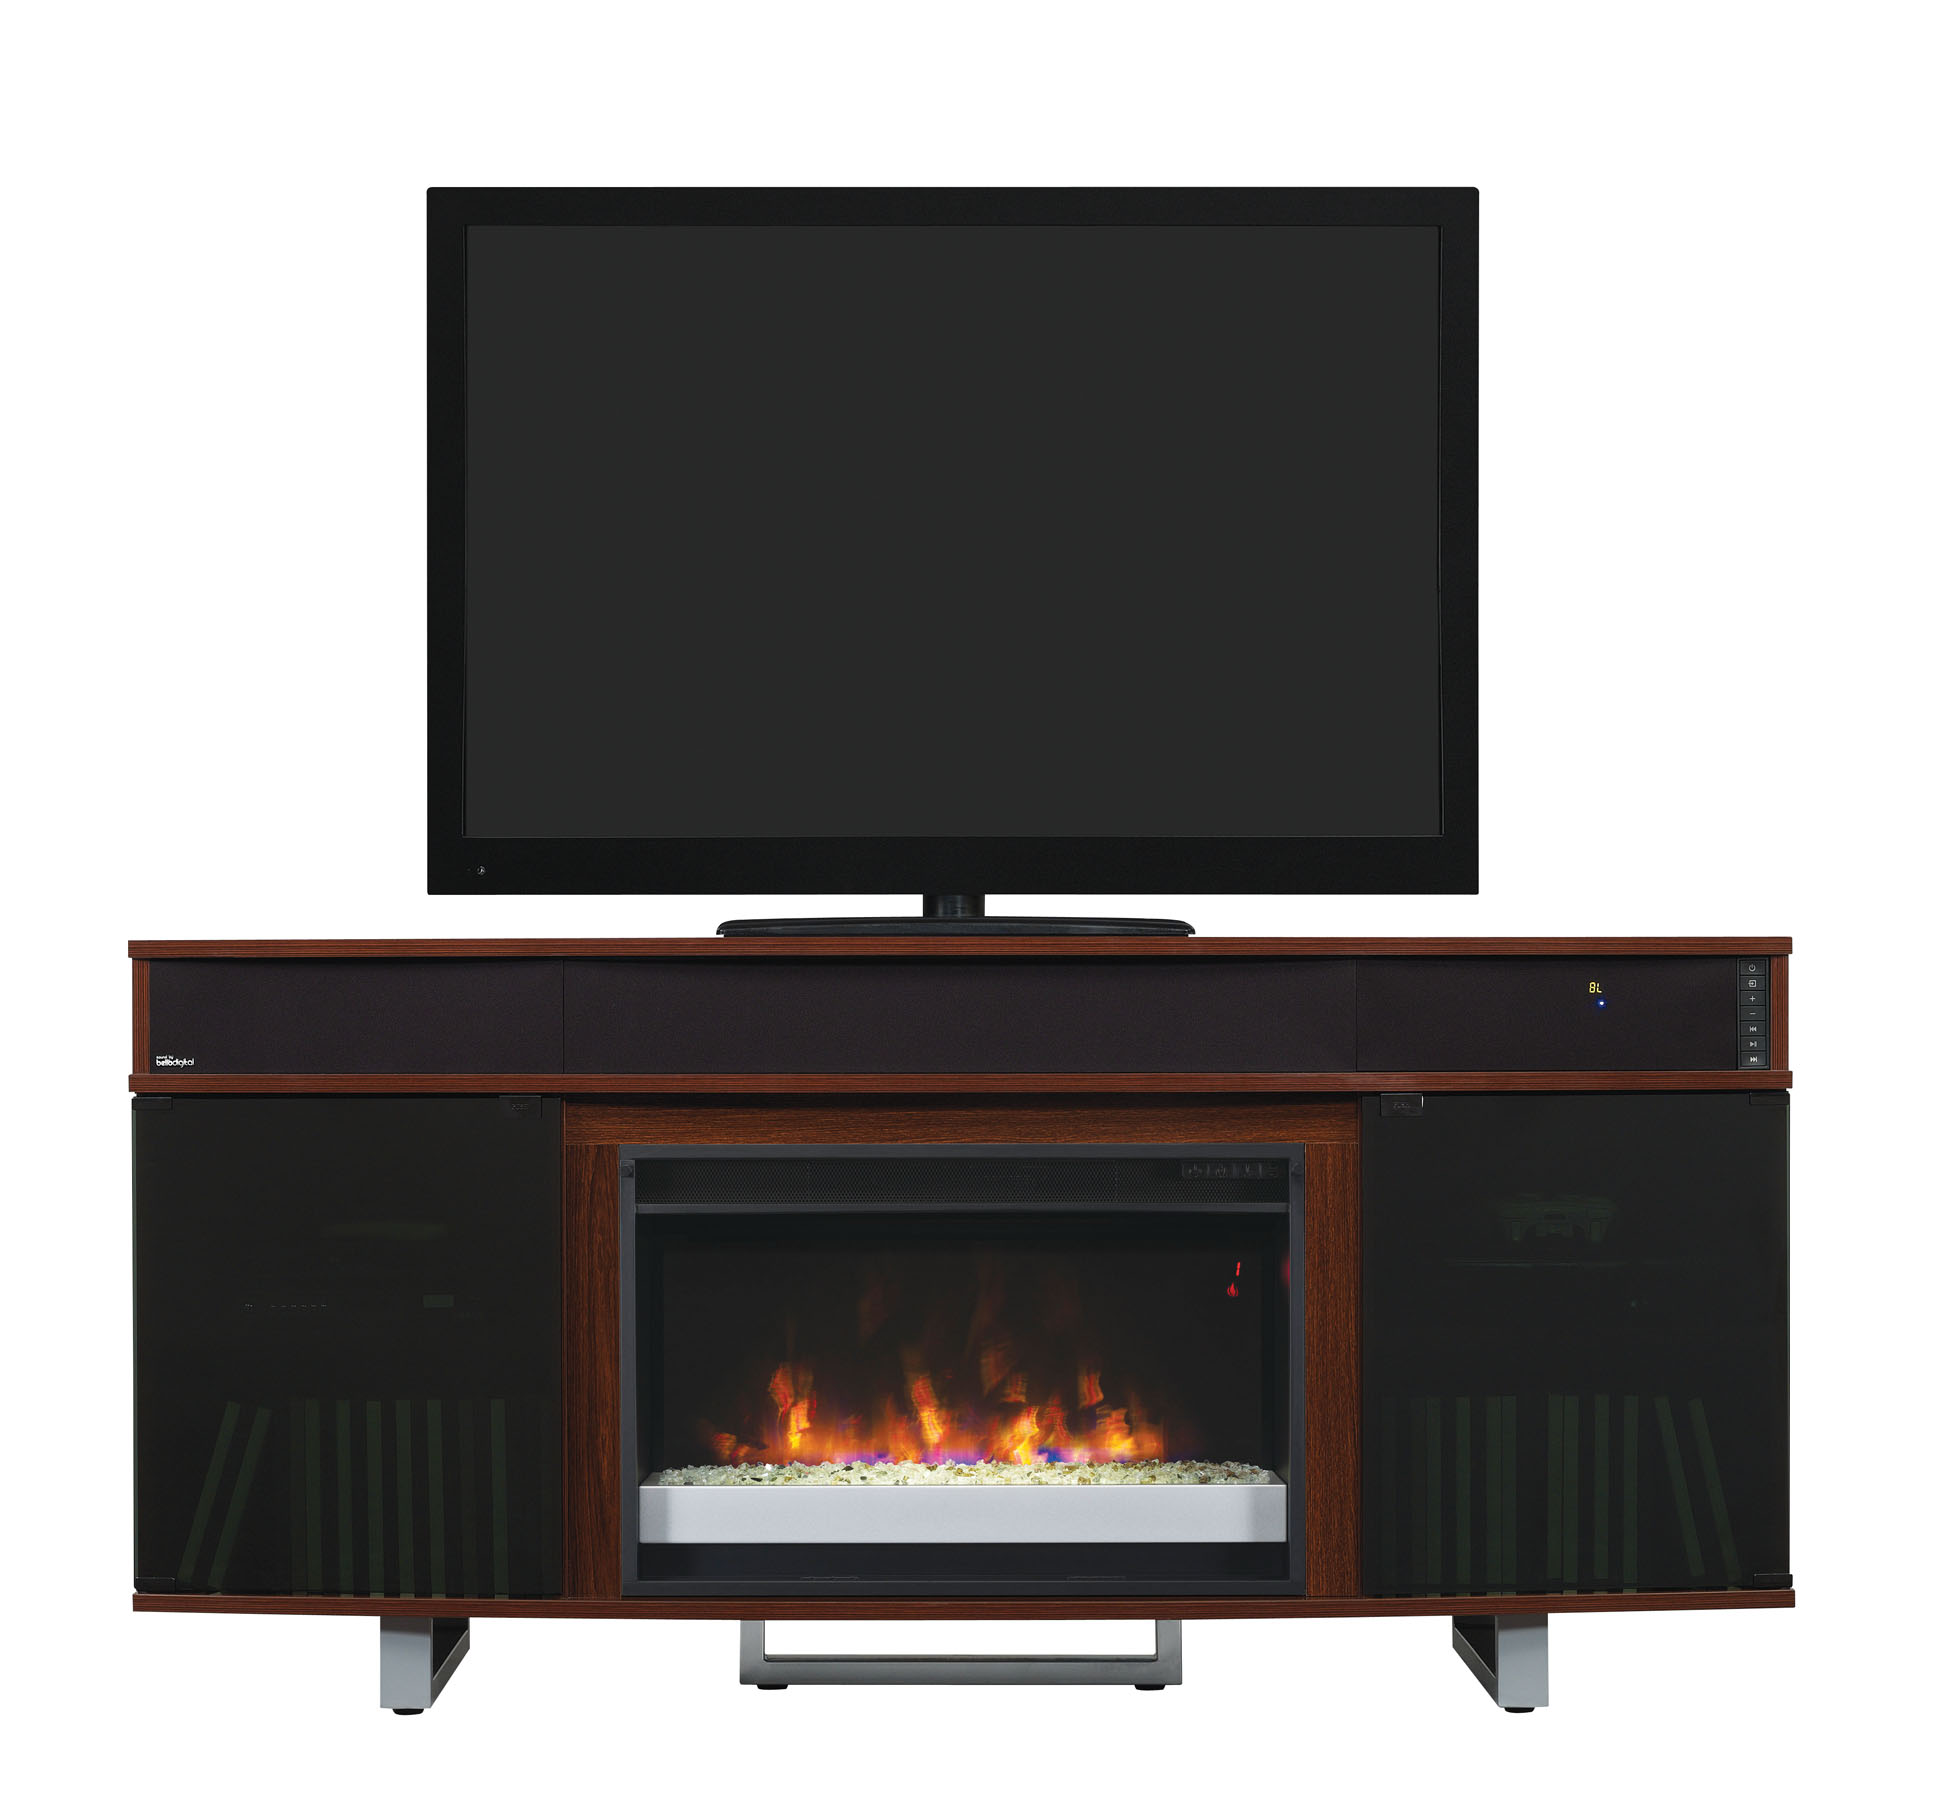 64 New Enterprise Cherry Infrared Media Electric Fireplace W Bluetooth Speakers